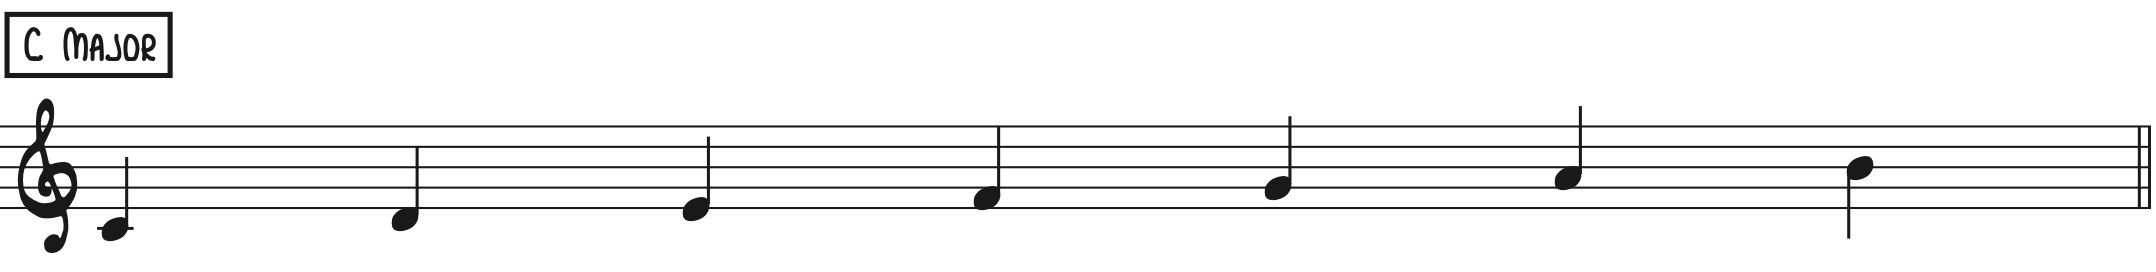 C Major Scale - Use on Dm7, CMaj7, and C6